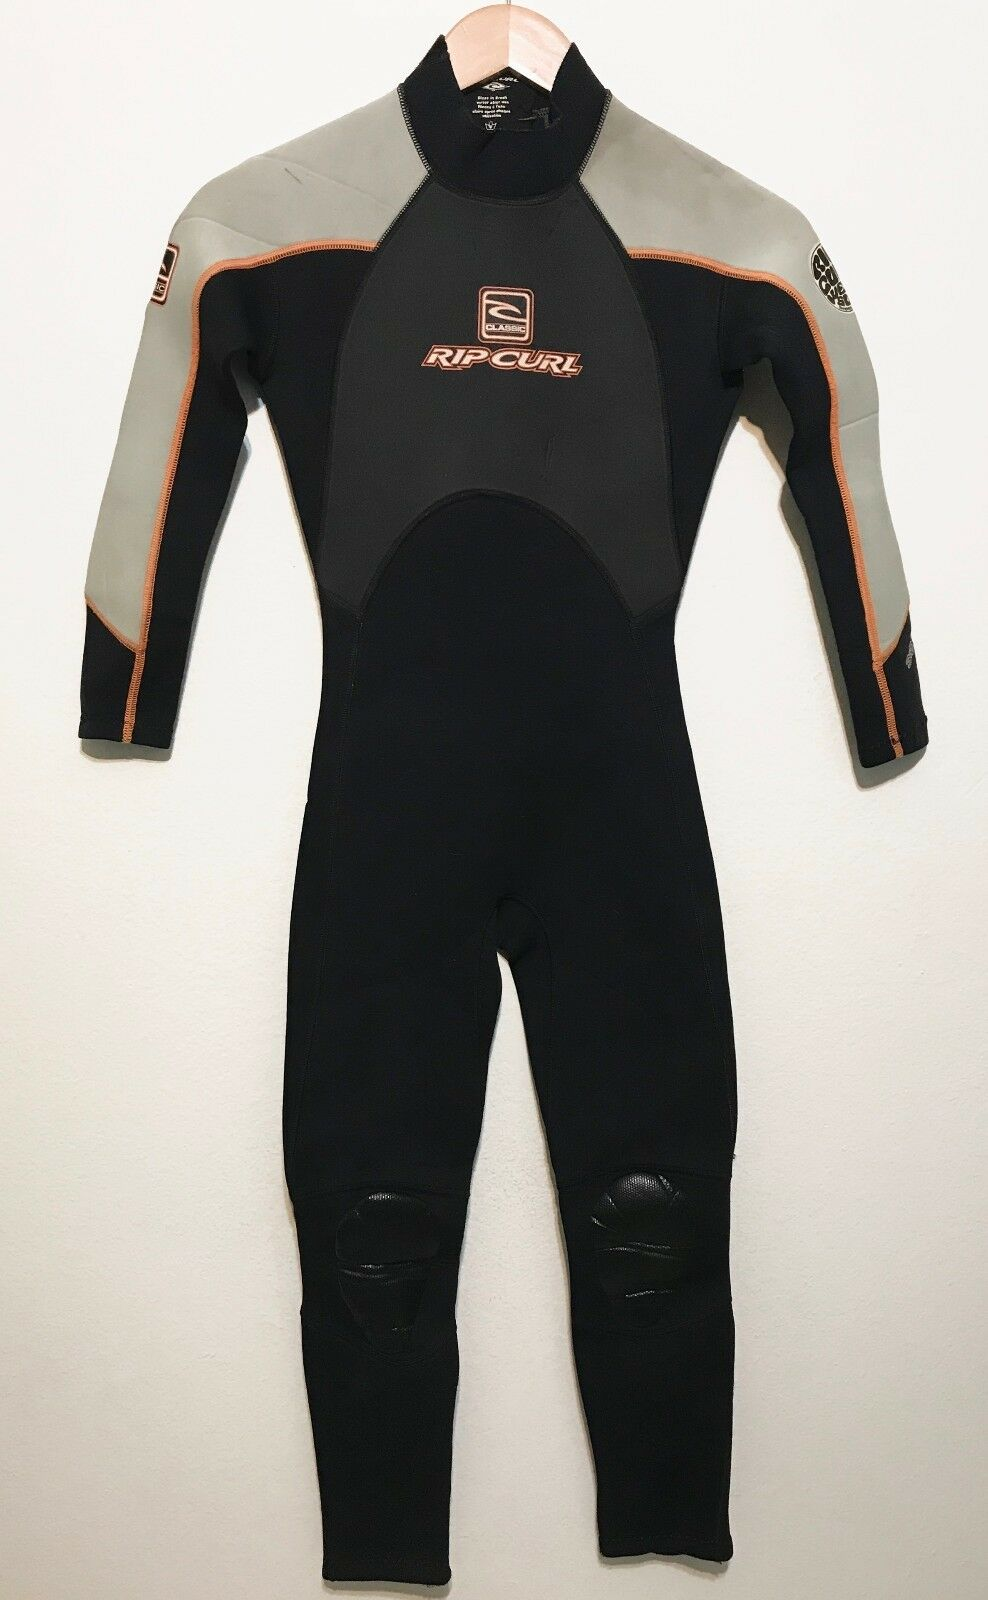 Rip Curl  lds  Full Wetsuit Juniors Size 12 Classic 3 2 Youth Kids  discount sales